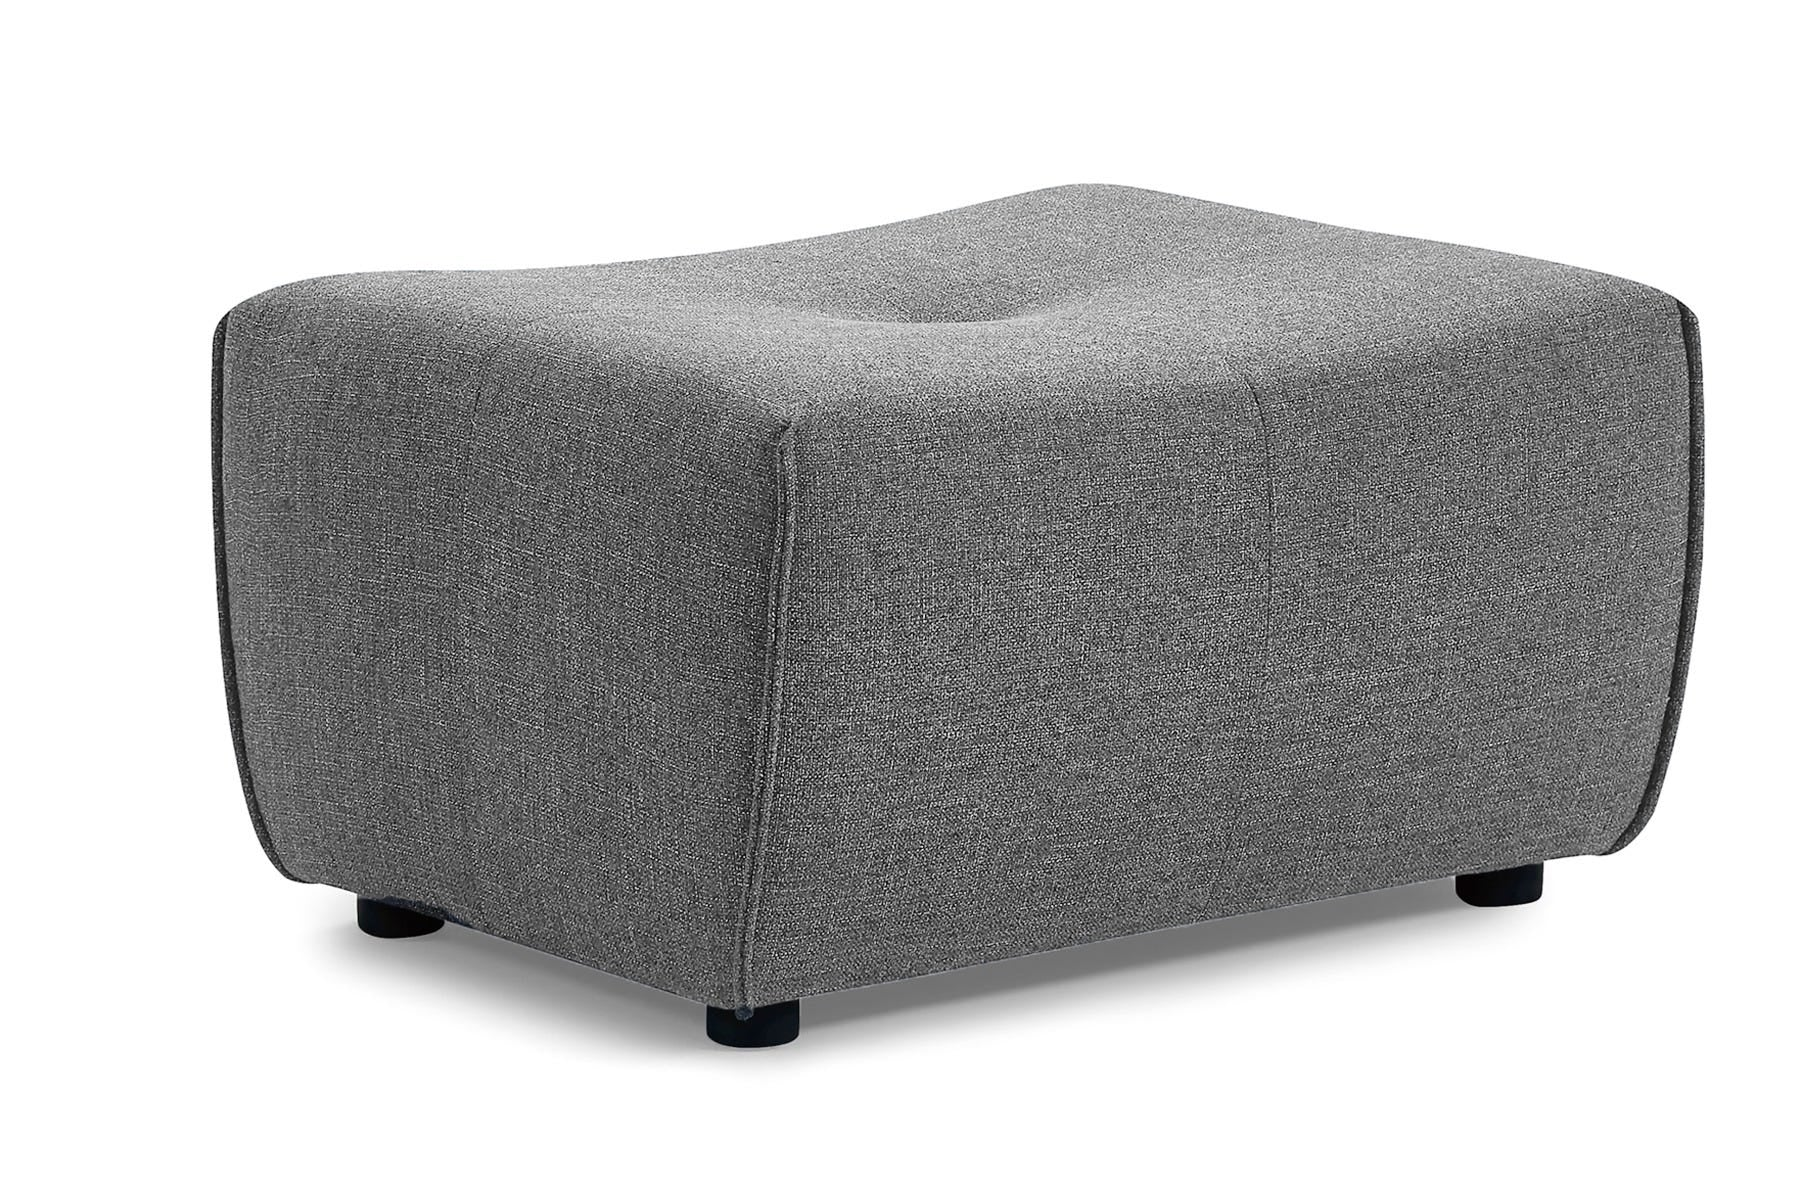 Cove Allure Gray Ottoman - MJM Furniture